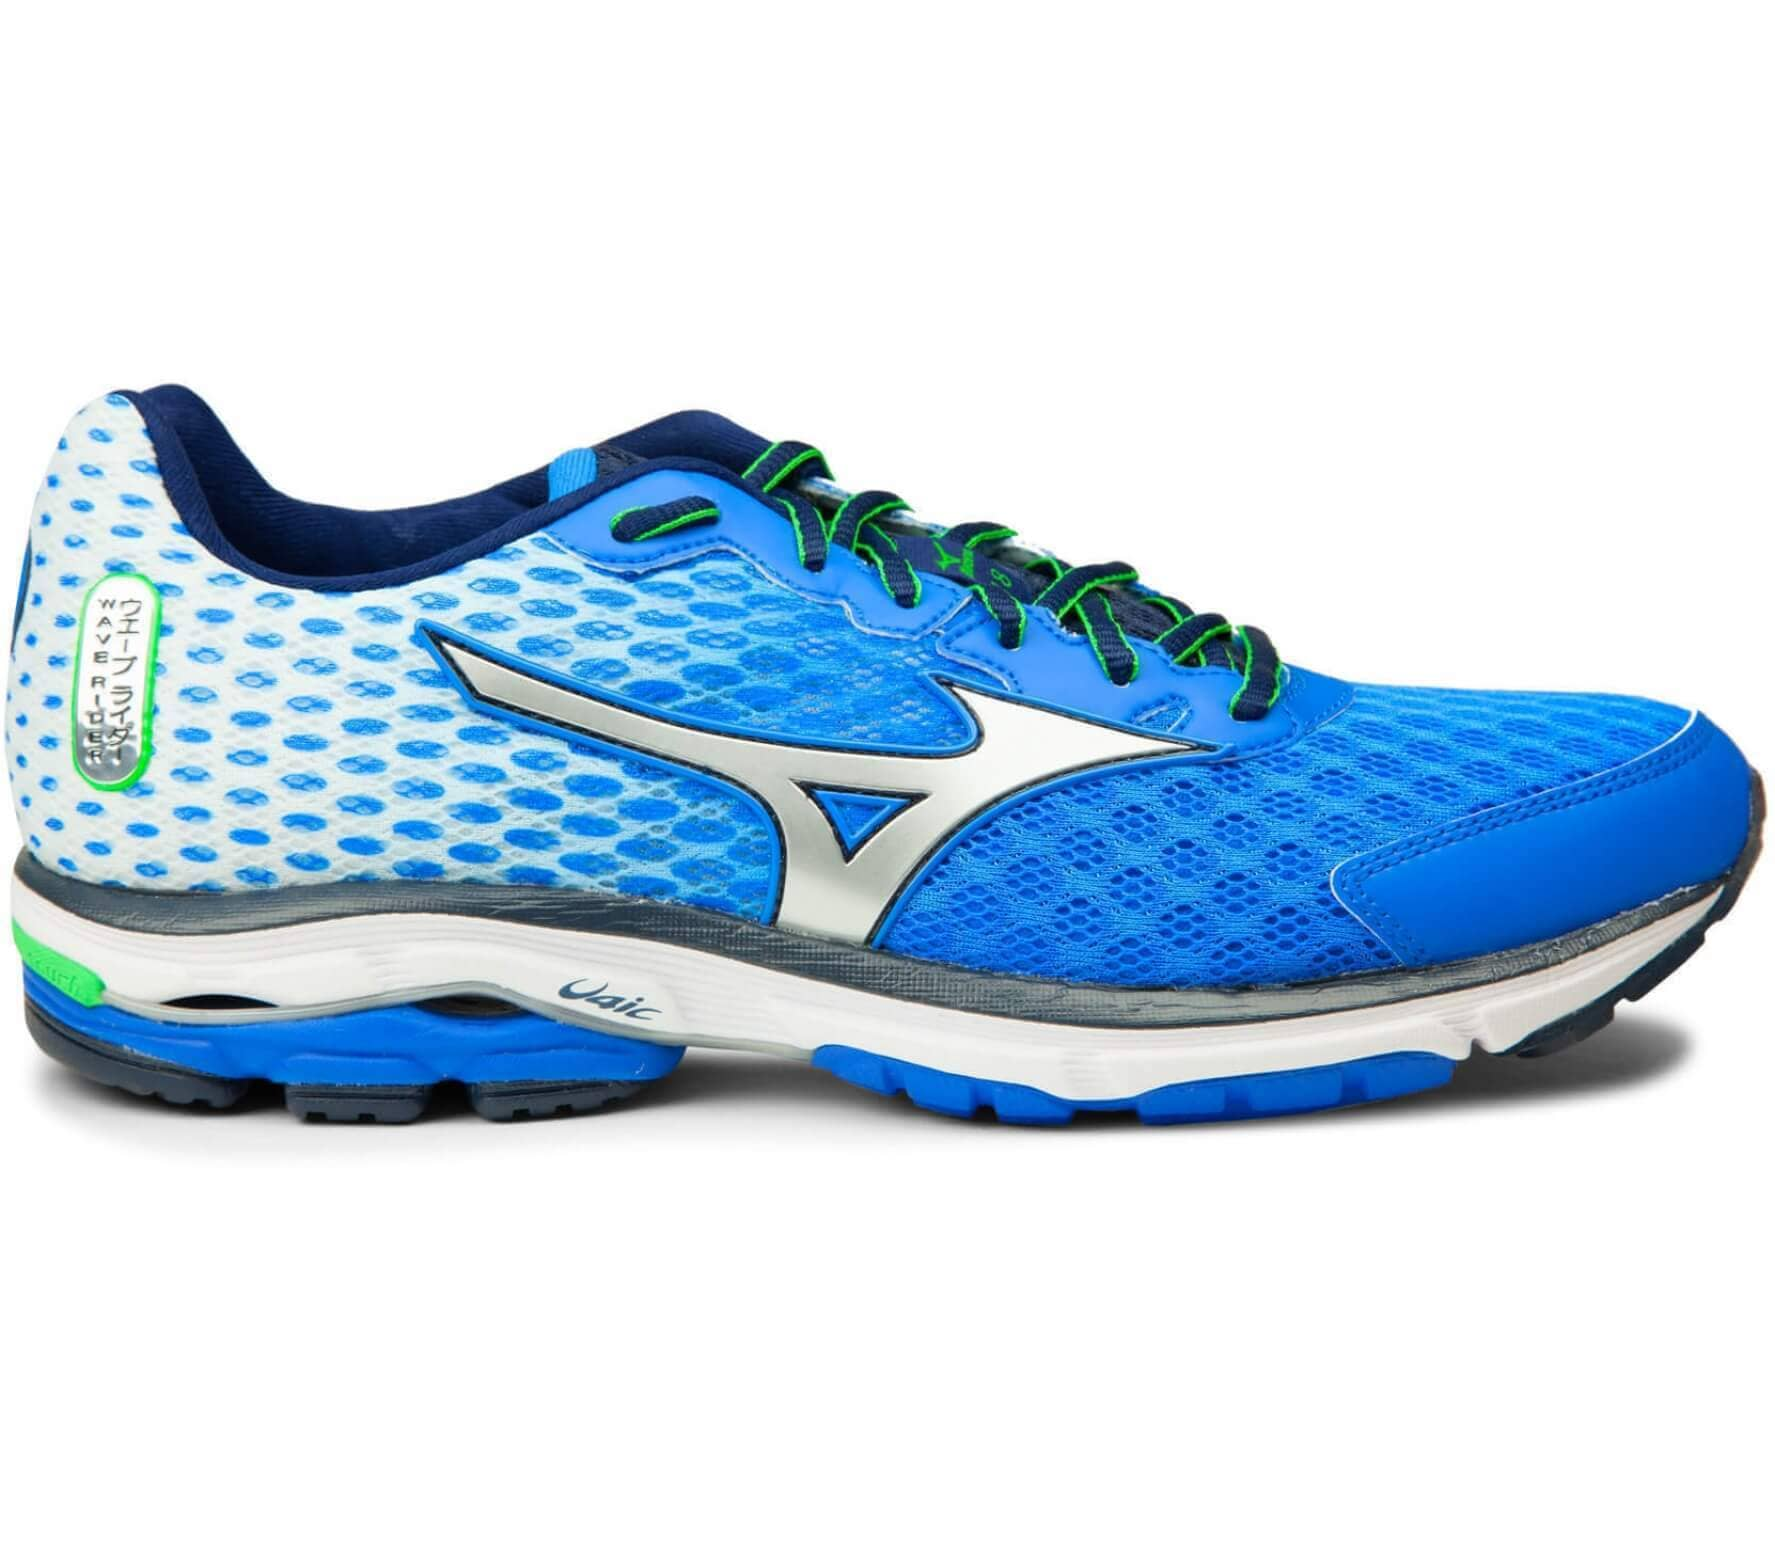 official photos e0a3c 99332 Mizuno - Wave Rider 18 men's running shoes (blue/silver)